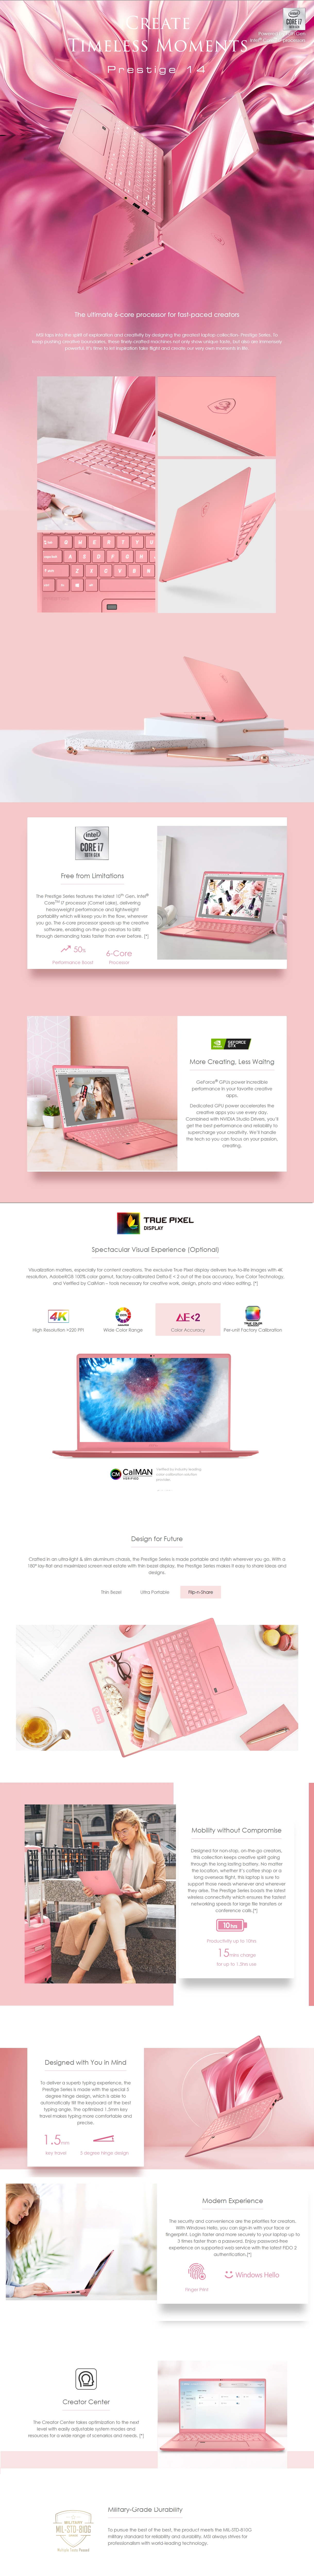 """A large marketing image providing additional information about the product MSI Prestige 14 Rose Pink 14""""  i7 MX330 Windows 10 Pro Notebook - Additional alt info not provided"""